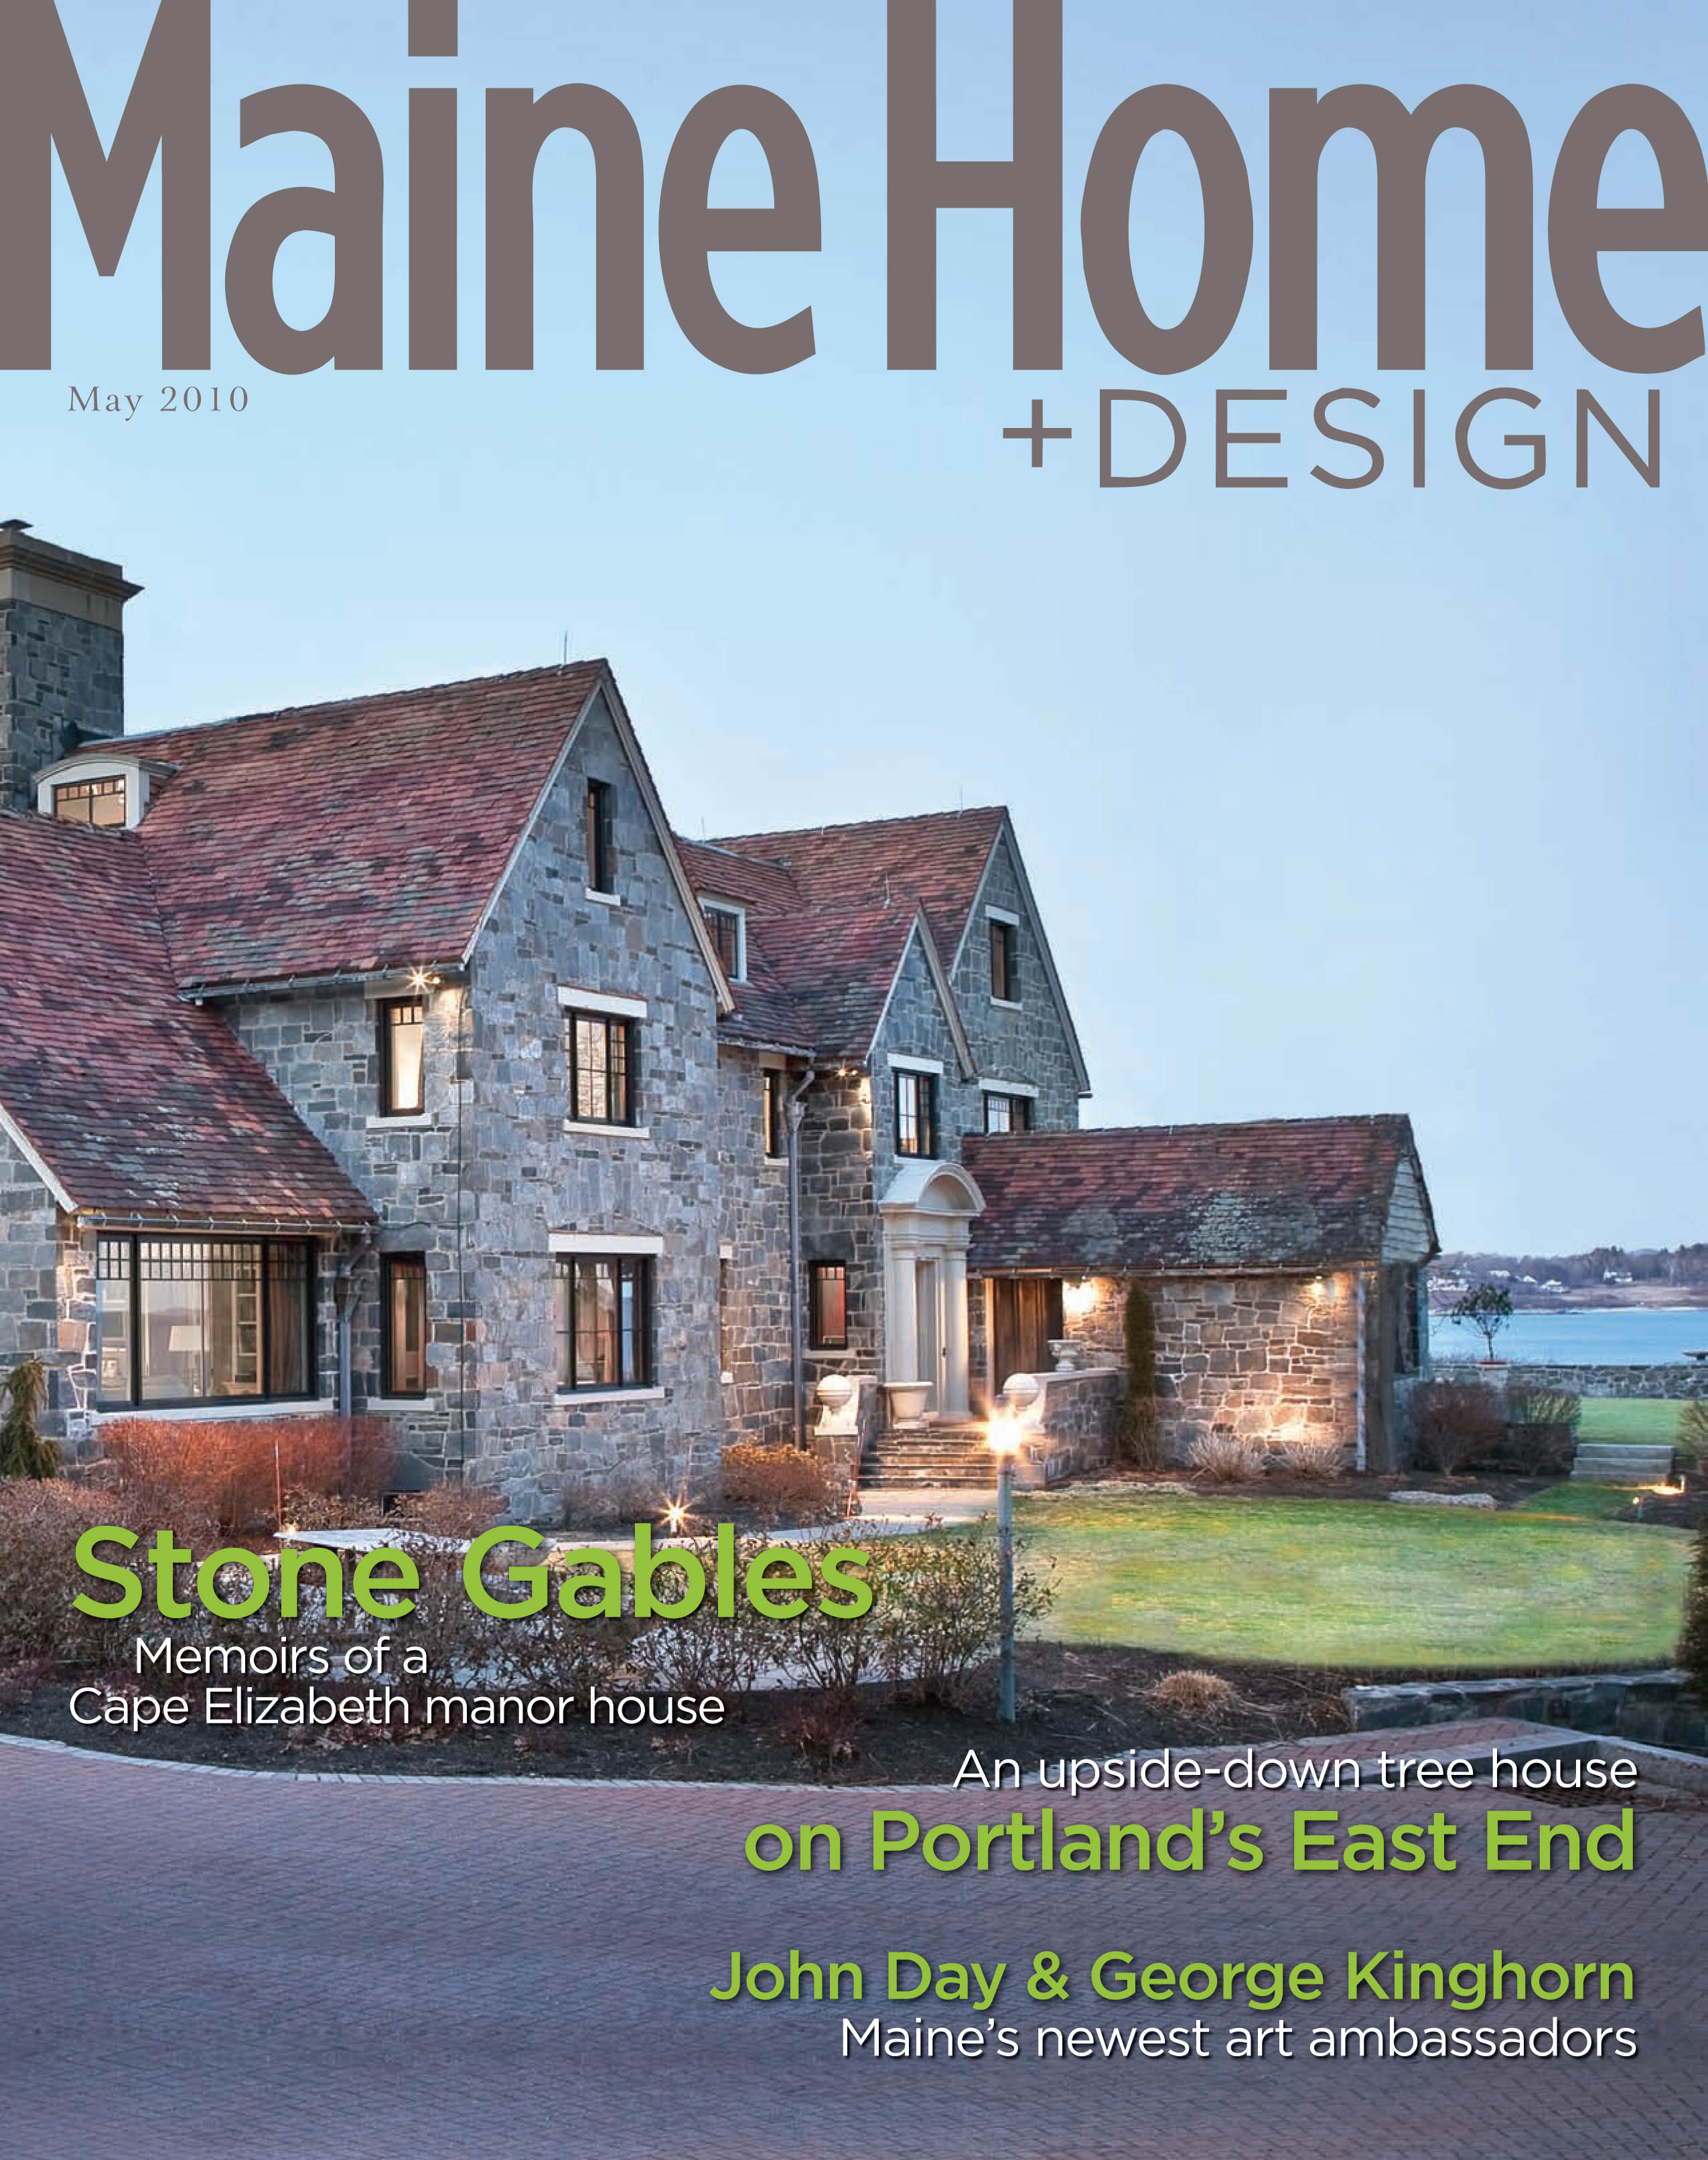 Maine Home + Design Cover on luxe interiors and design, maine coast kitchen design, decorating and design, maine agriculture, charleston home and design, california home and design, maine log homes, colorful maine cottage design, beautiful homes and design, new england home and design, florida home and design, maine animals, maine interior design, maine coastal homes, maine houses, maine jacuzzi and fireplace, maine waterfront mansion,